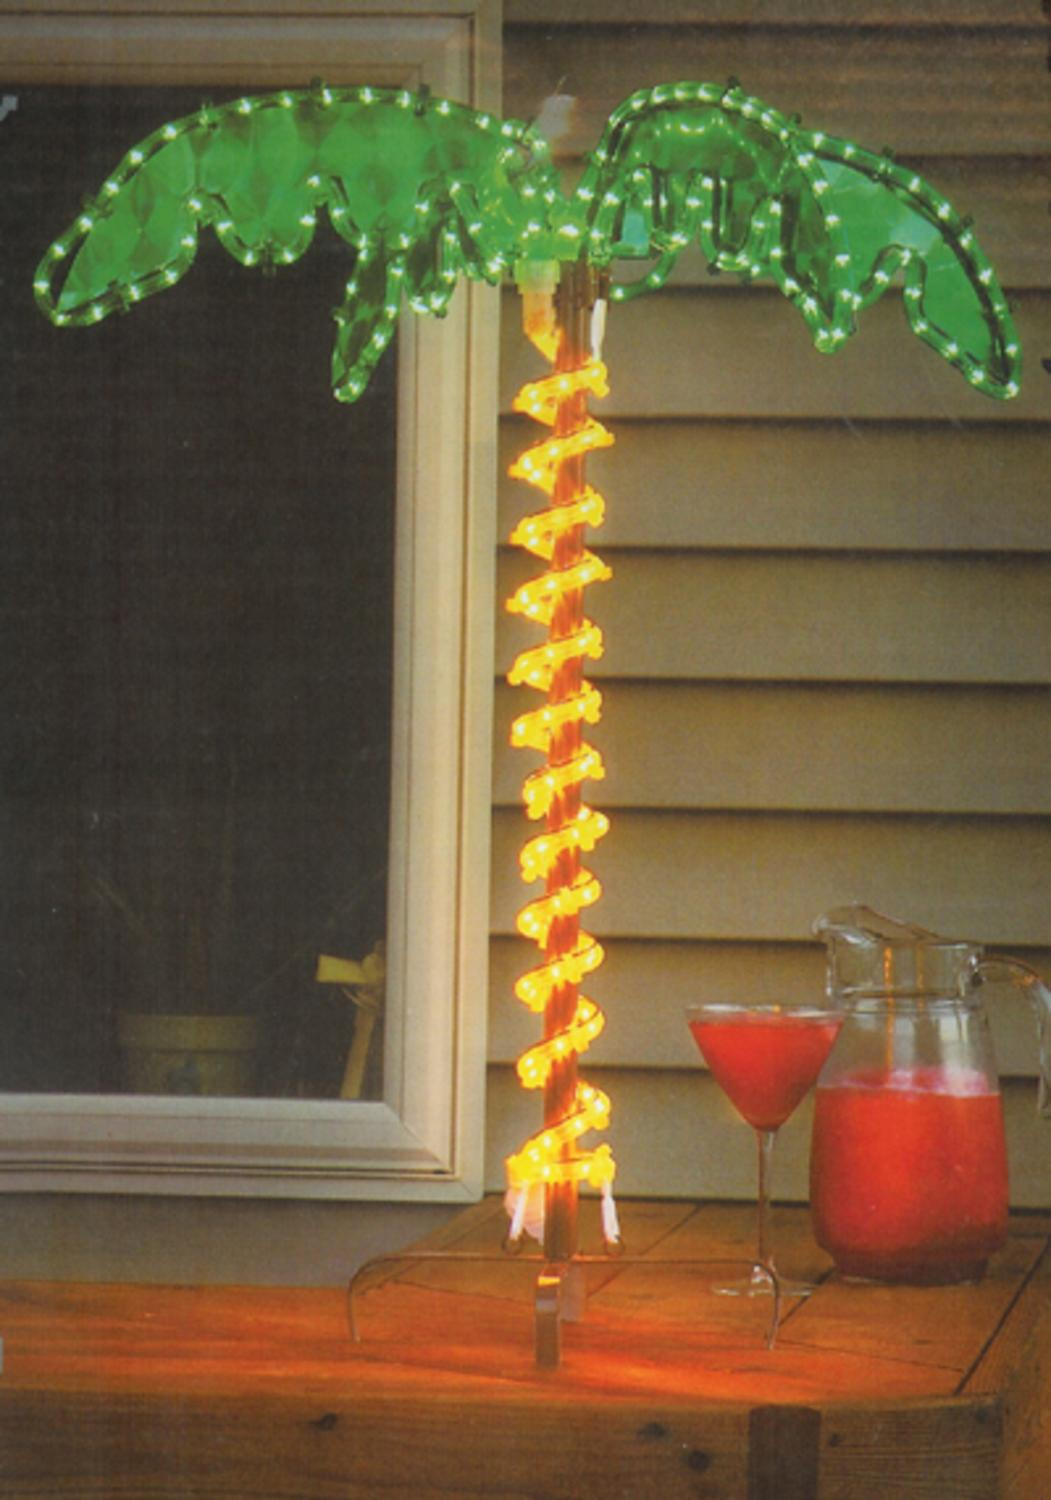 30  Tropical Lighted Holographic Rope Light Outdoor Palm Tree Yard Decoration - Walmart.com & 30